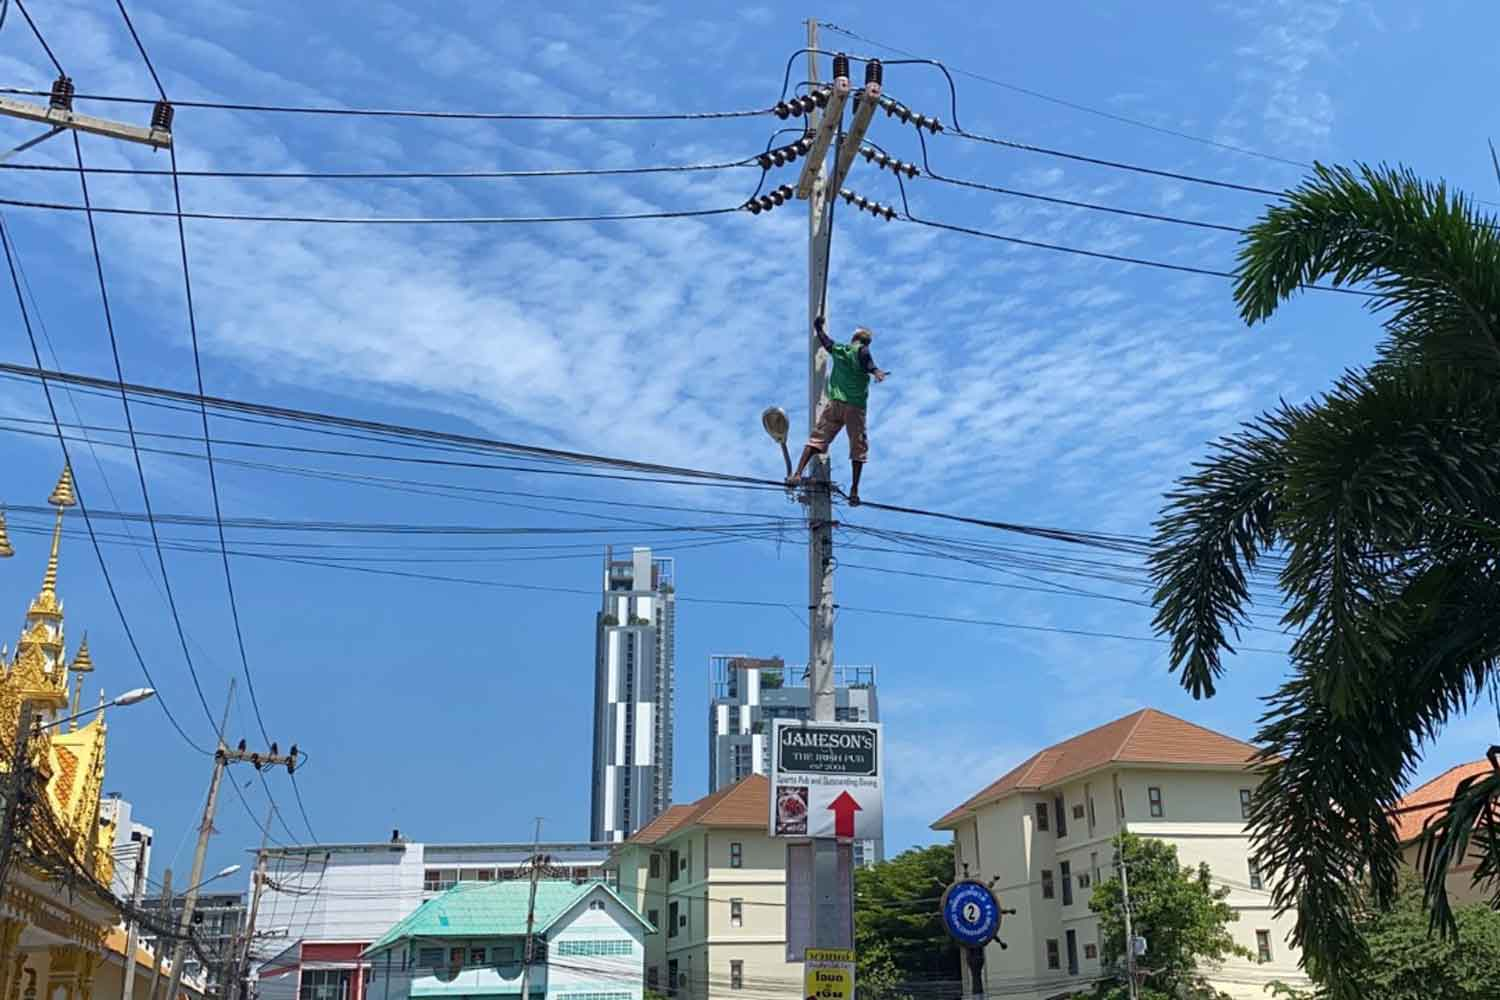 Paiboon Wisetsri, 59, complains loudly from a power pole in Pattaya, Chon Buri, on Tuesday morning. (Photo: Chaiyot Pupattanapong)